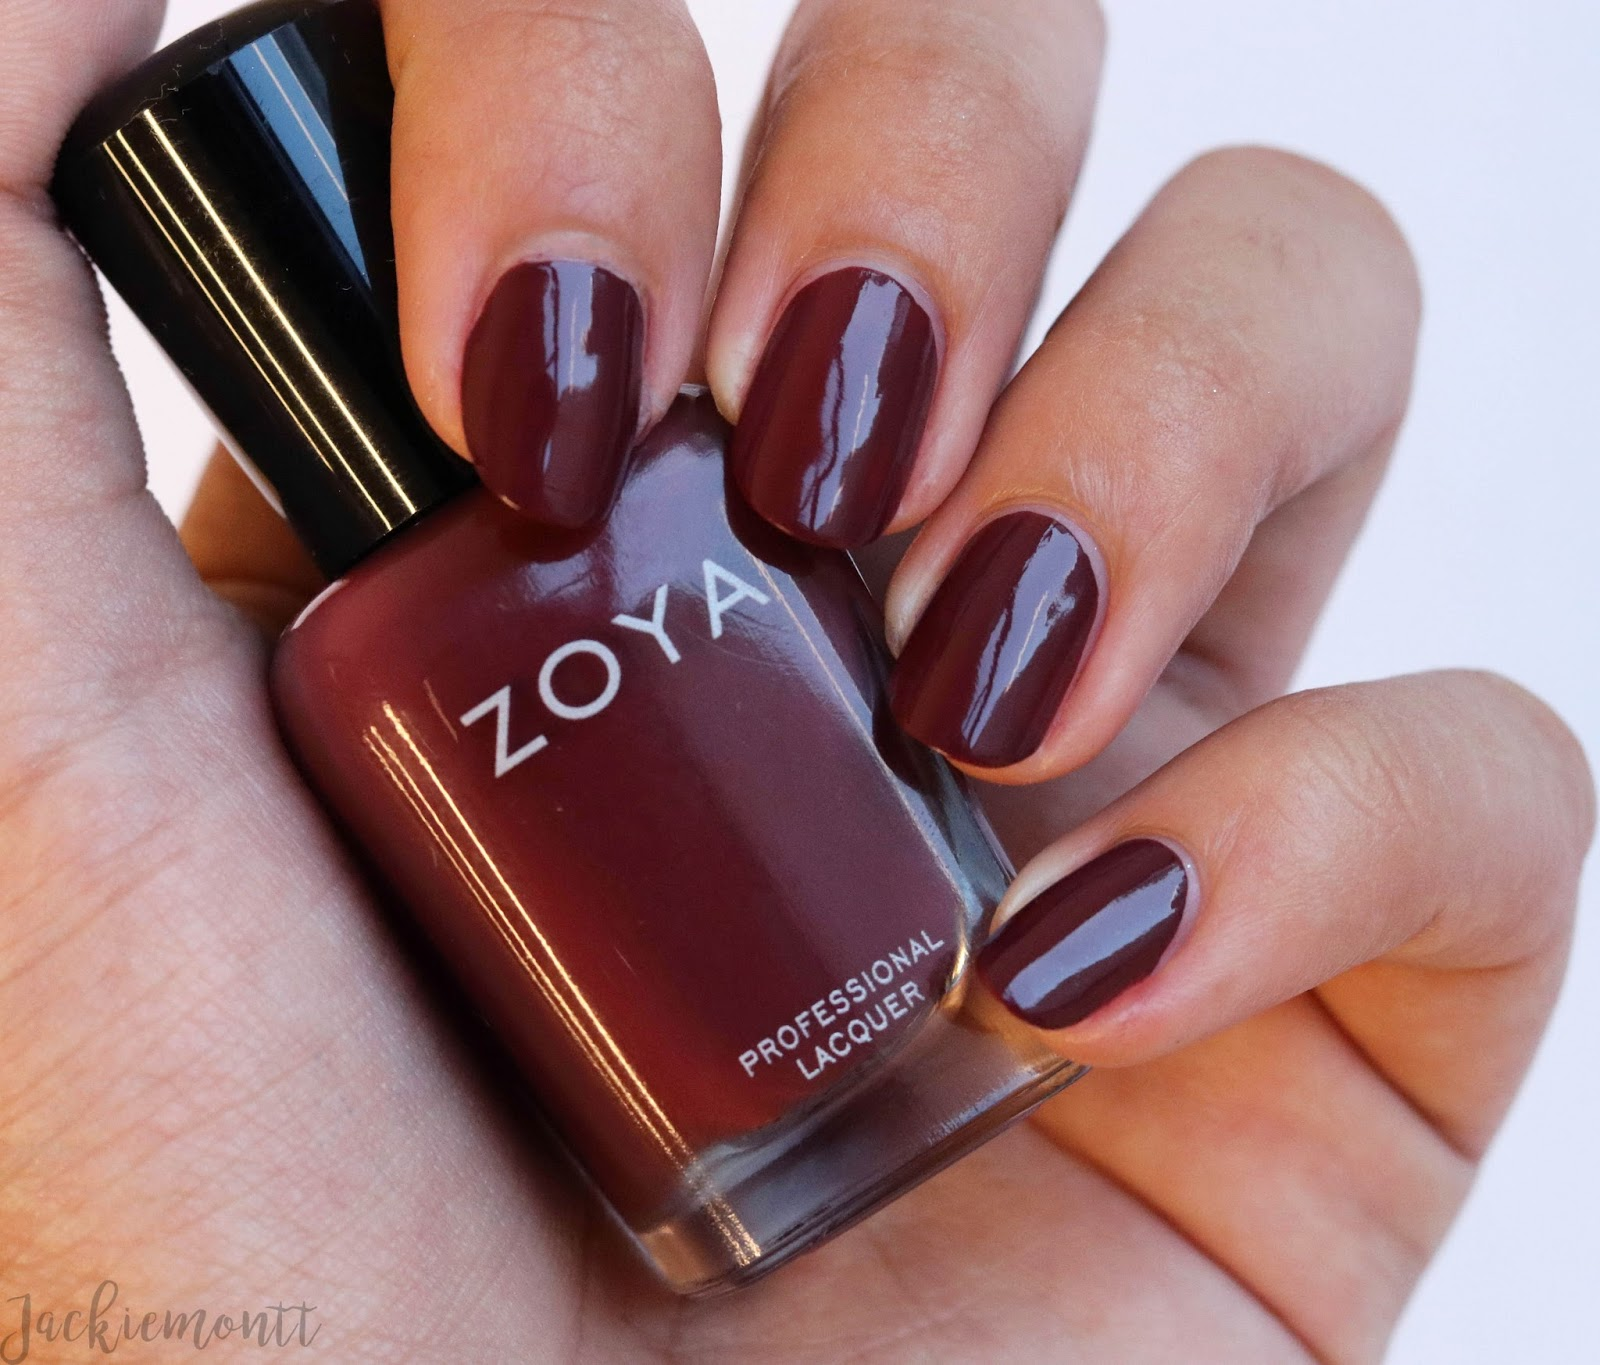 Zoya   Sophisticates Fall 2017 Collection Swatches - JACKIEMONTT